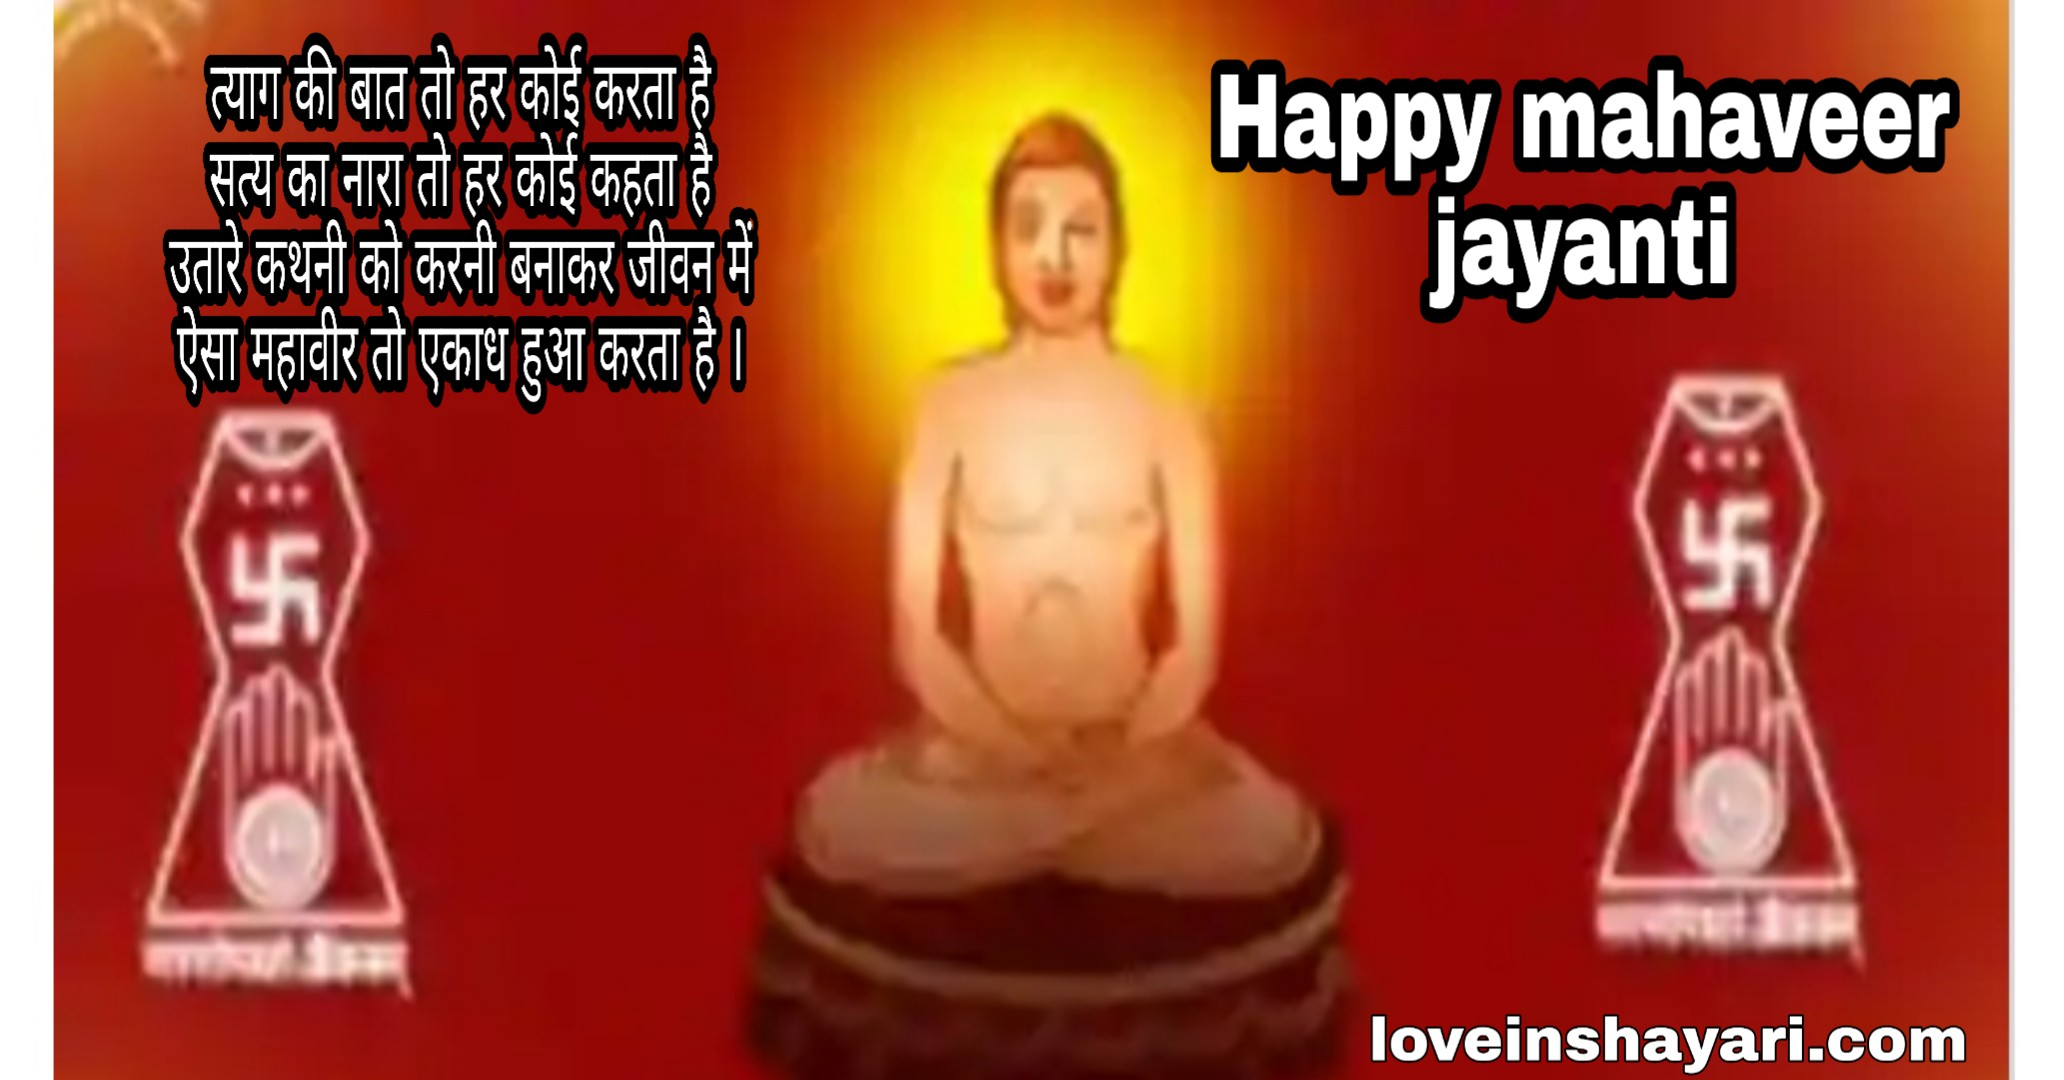 Photo of Mahaveer jayanti Images 2020 hd